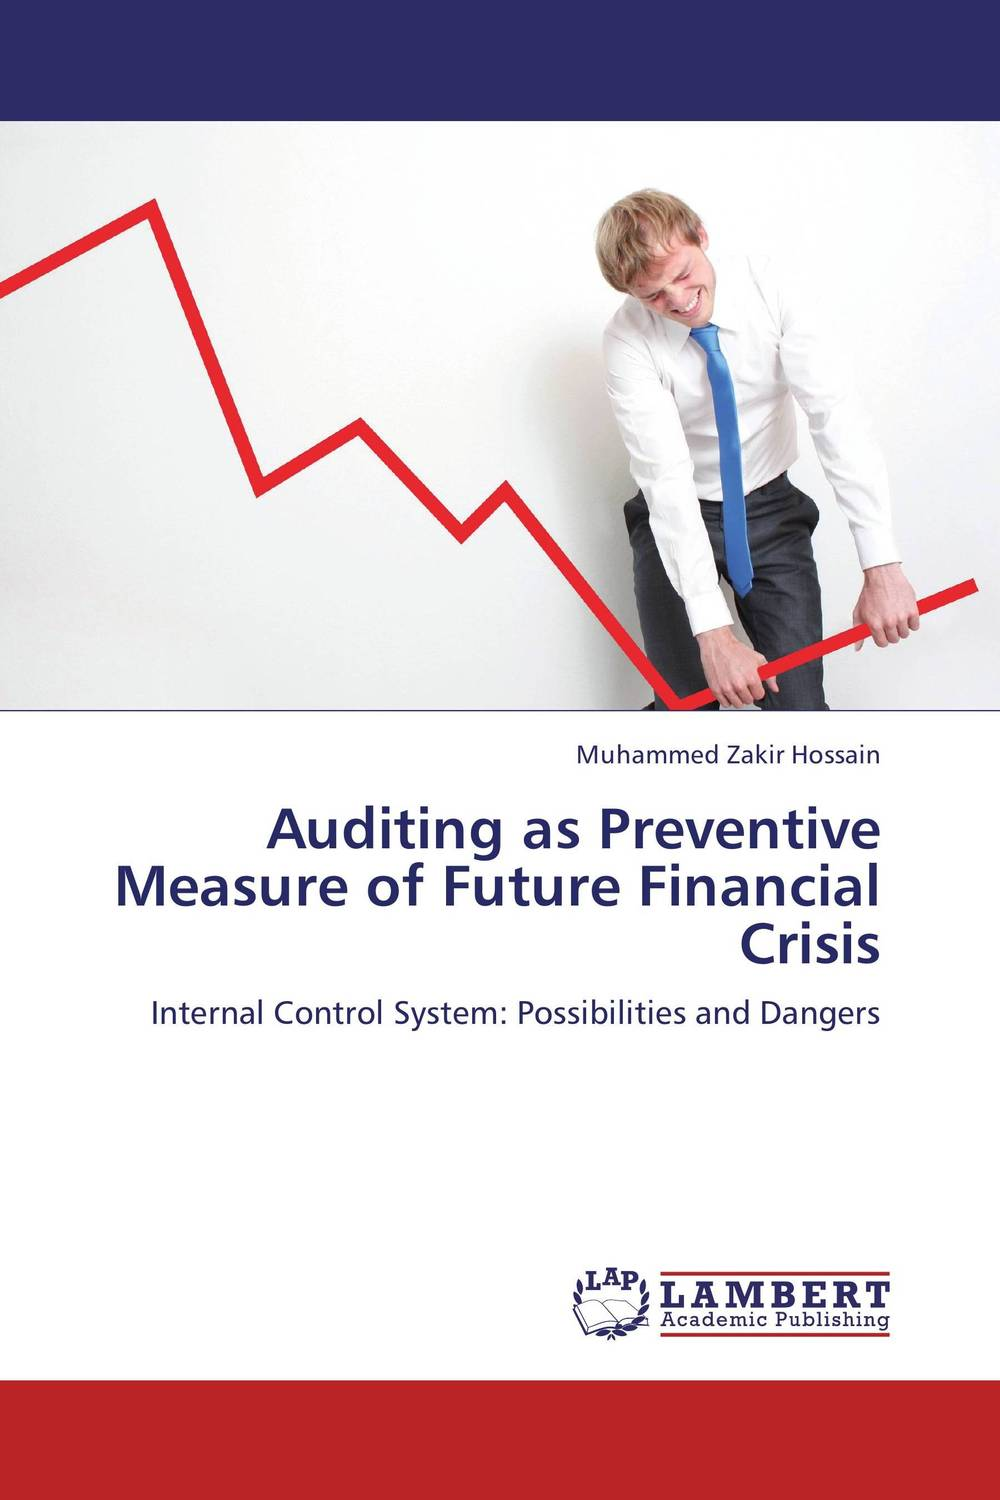 Auditing as Preventive Measure of Future Financial Crisis evaluation of the internal control practices